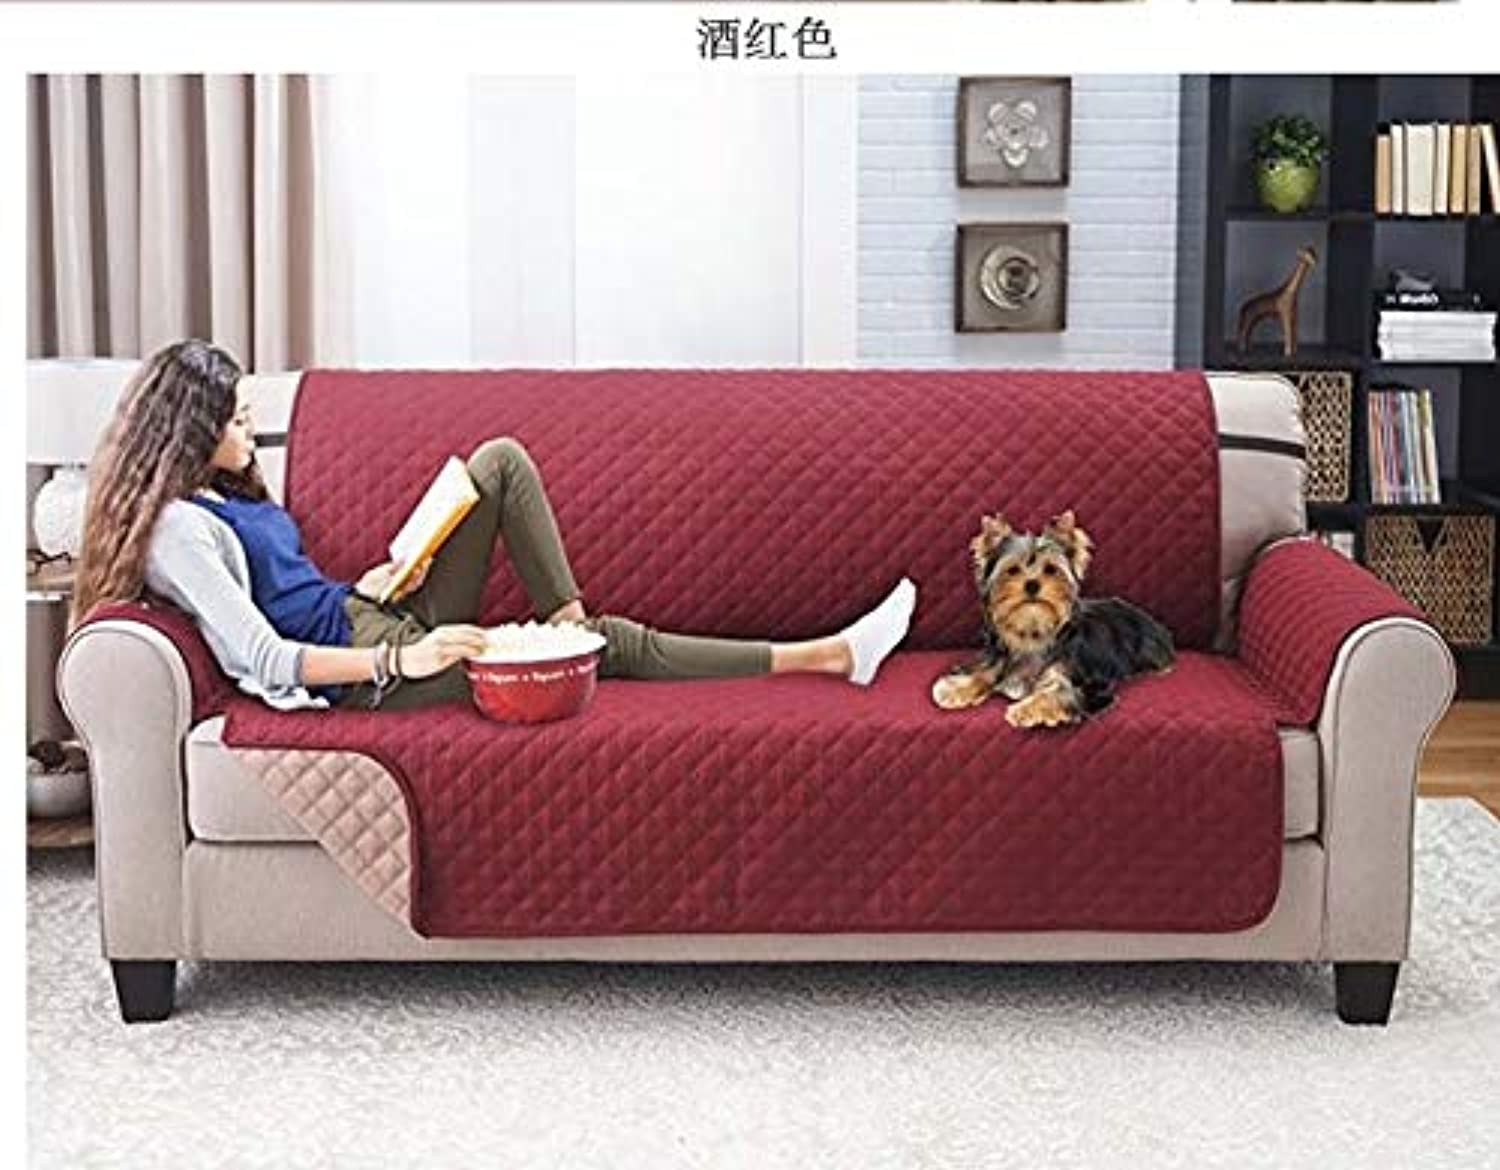 Solid color Sofa Cover Washable Removable Towel Armrest Couch Covers Slipcovers Couch Dog Pets Single Two Three Seater   Burgundy, Double Seat